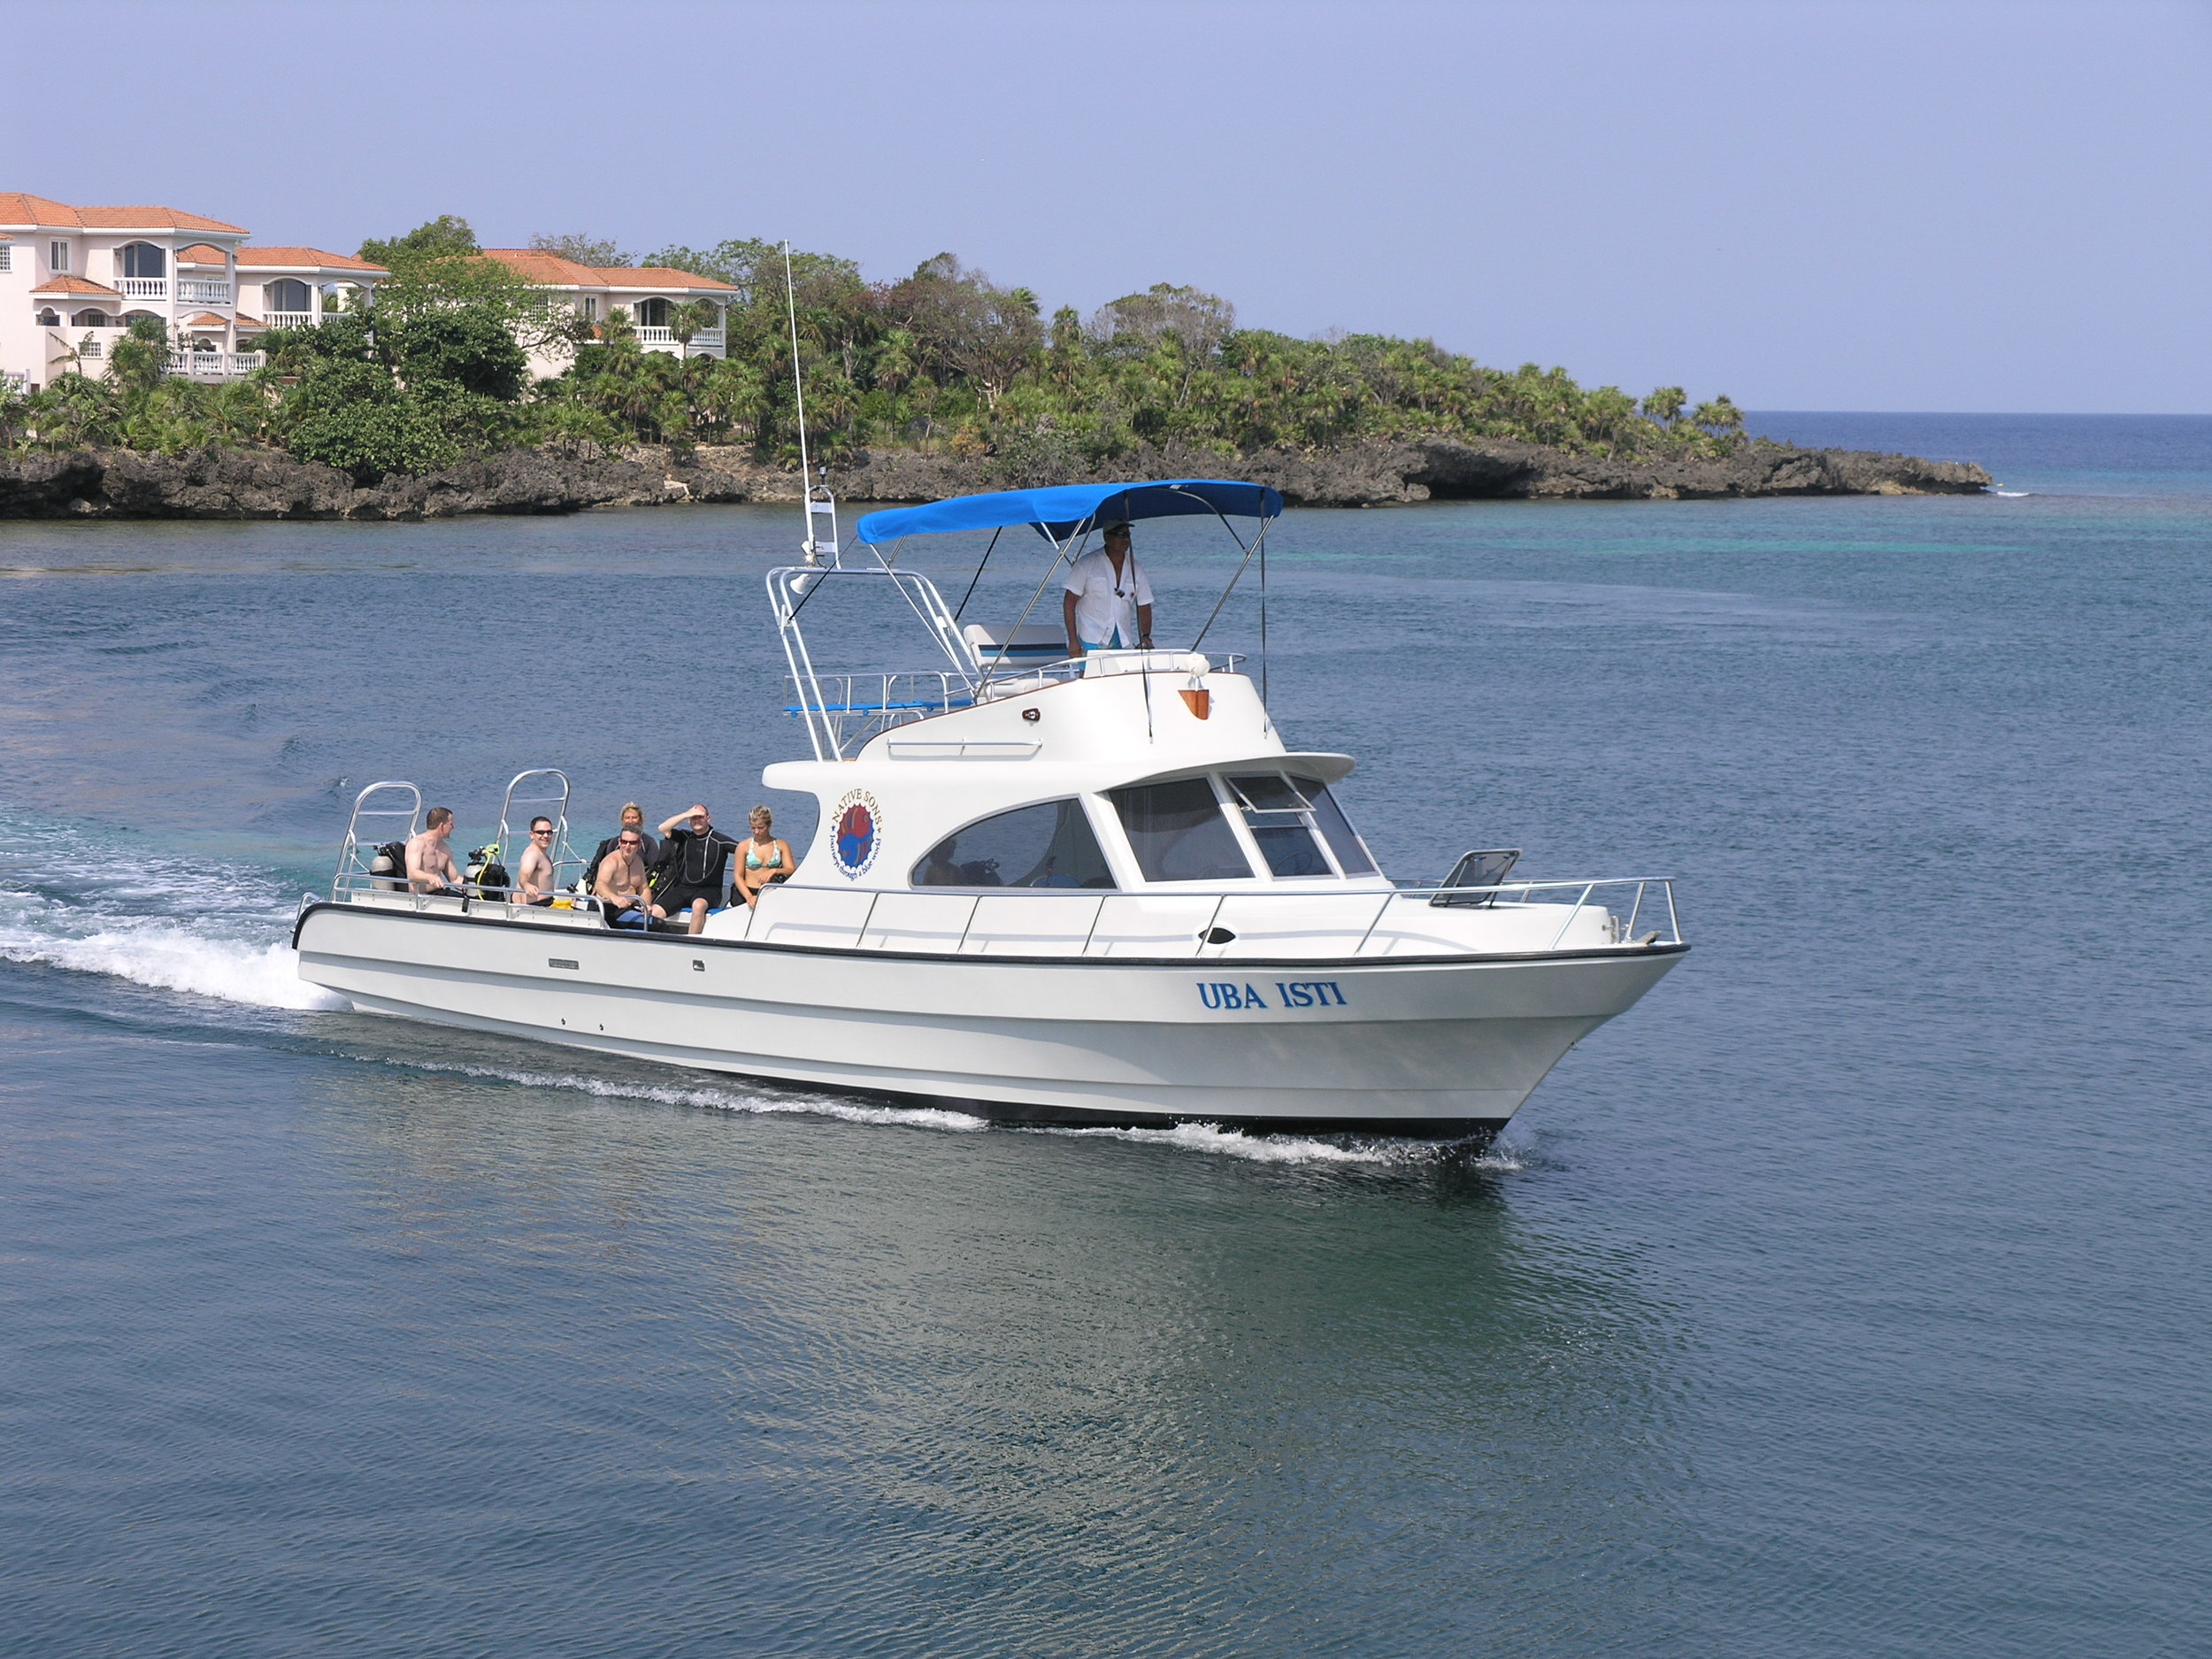 Our beautiful dive boat, the Uba Isti.